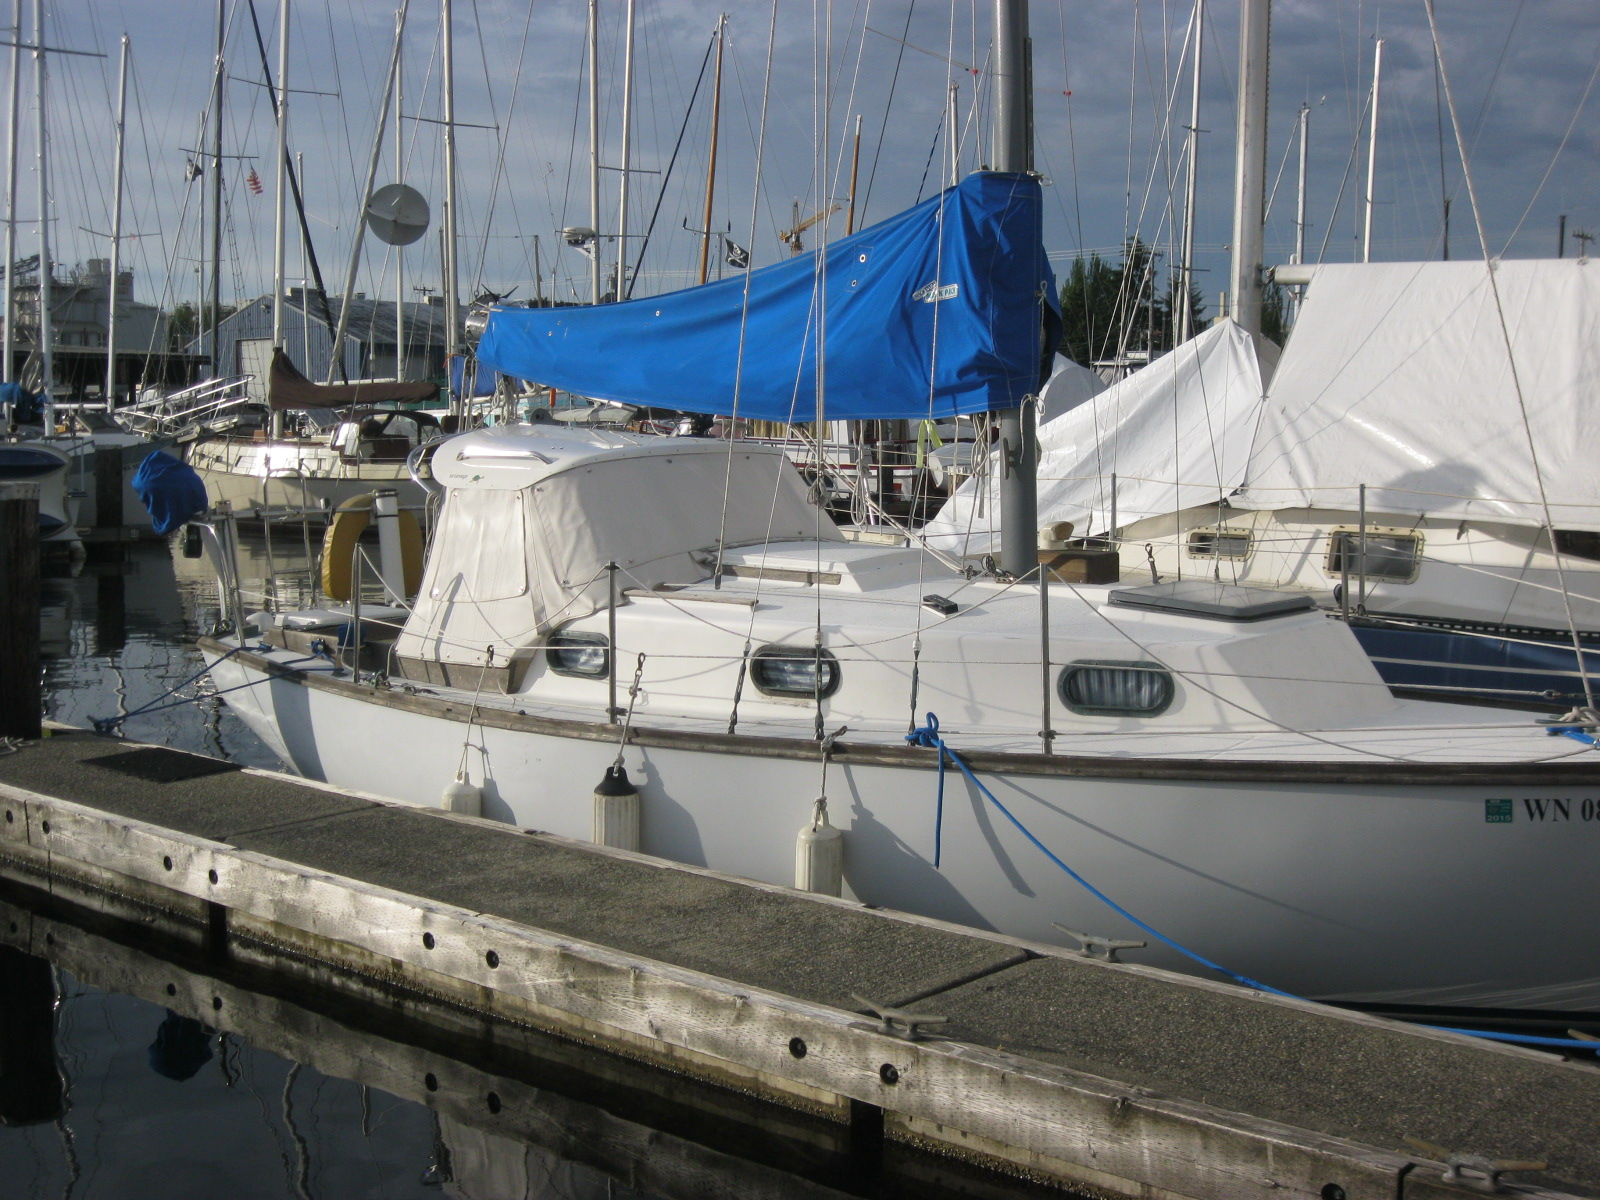 The Vicky Lee in Ballard before setting sail.